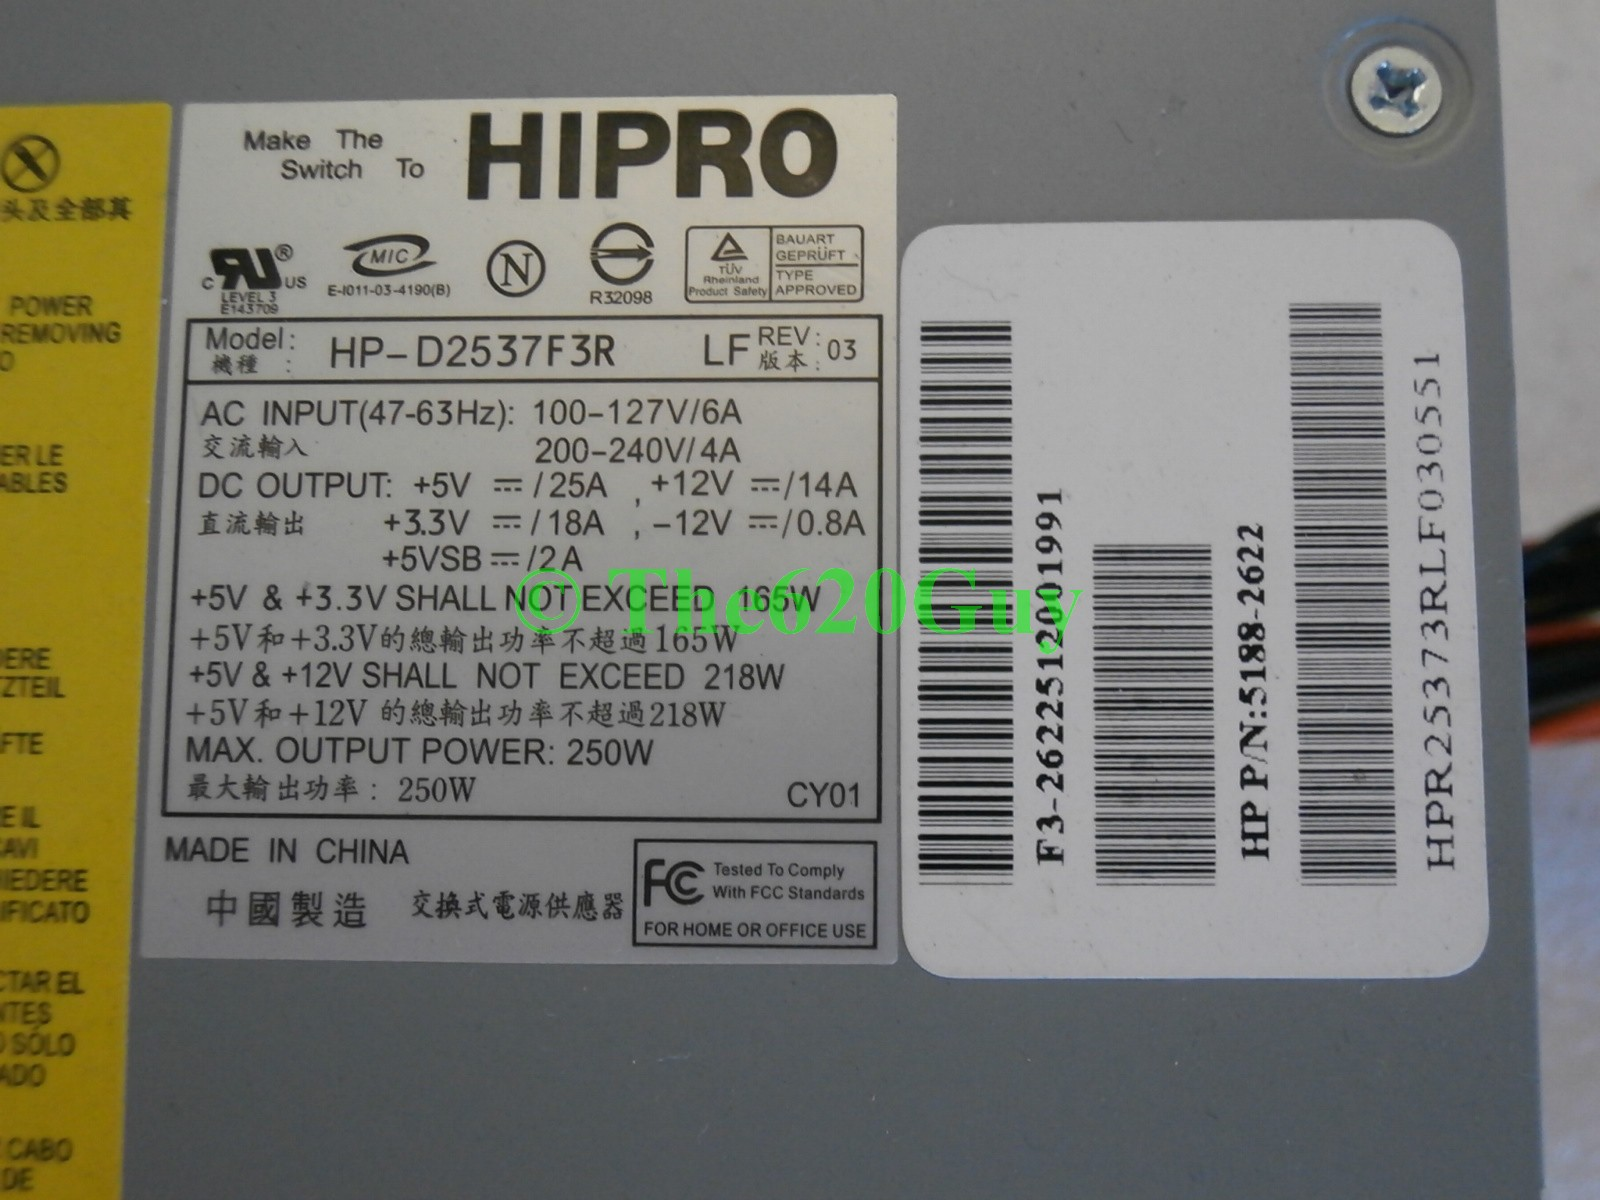 HP Compaq 250W ATX 20 Pin 4 Pin Power Supply 5188 2622 HIPRO HP D2537F3R LF a600 360851427793 4 hp d2537f3r power supply schematic hipro hp d3057f3h review v2 0 hp-d2537f3r wiring diagram at soozxer.org